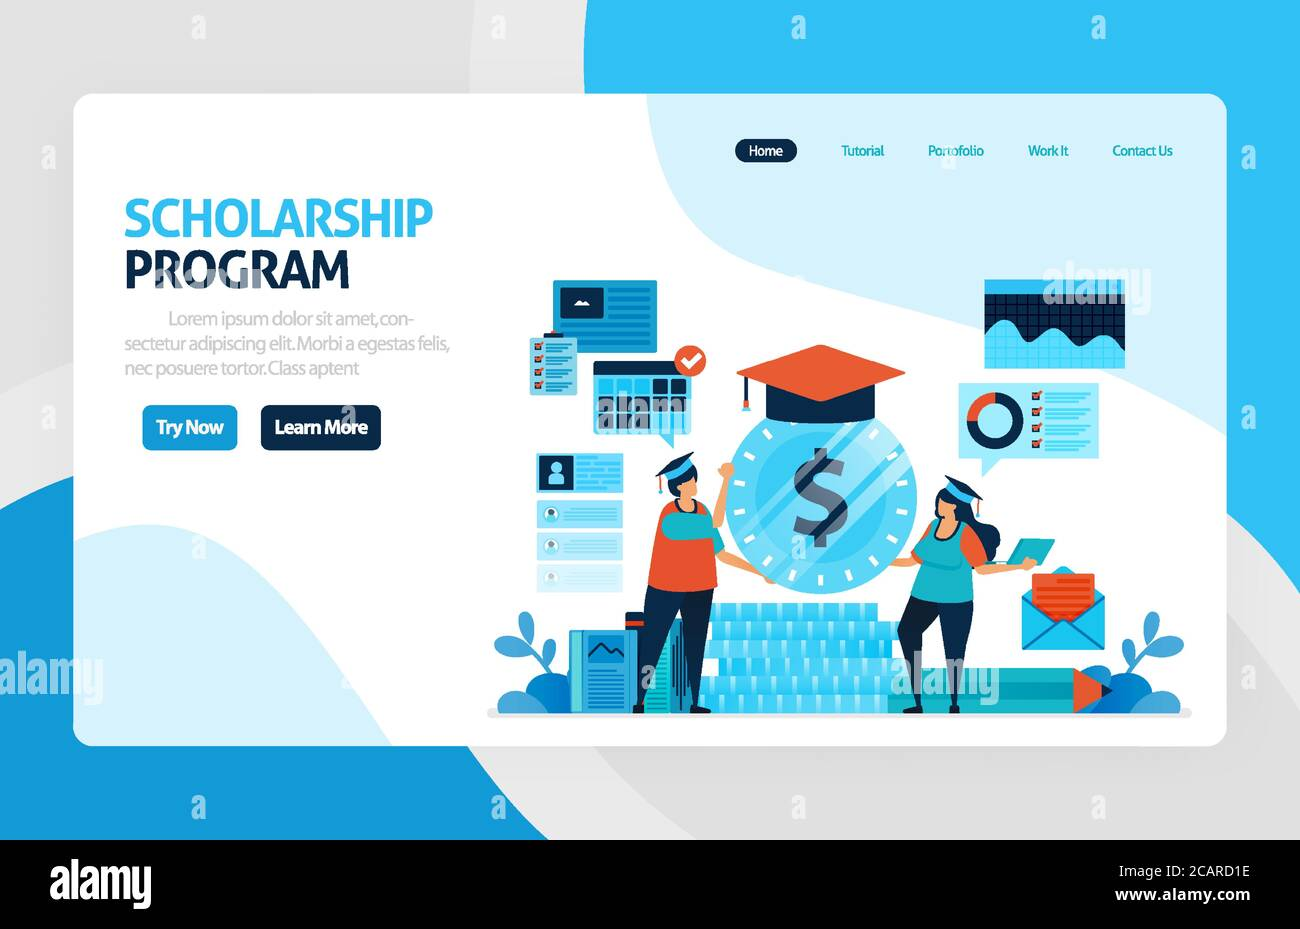 Vector Illustration Of Scholarship Education Program Learning Abroad Financial Funds And Study Loans For Education Academic Achievements School Co Stock Vector Image Art Alamy